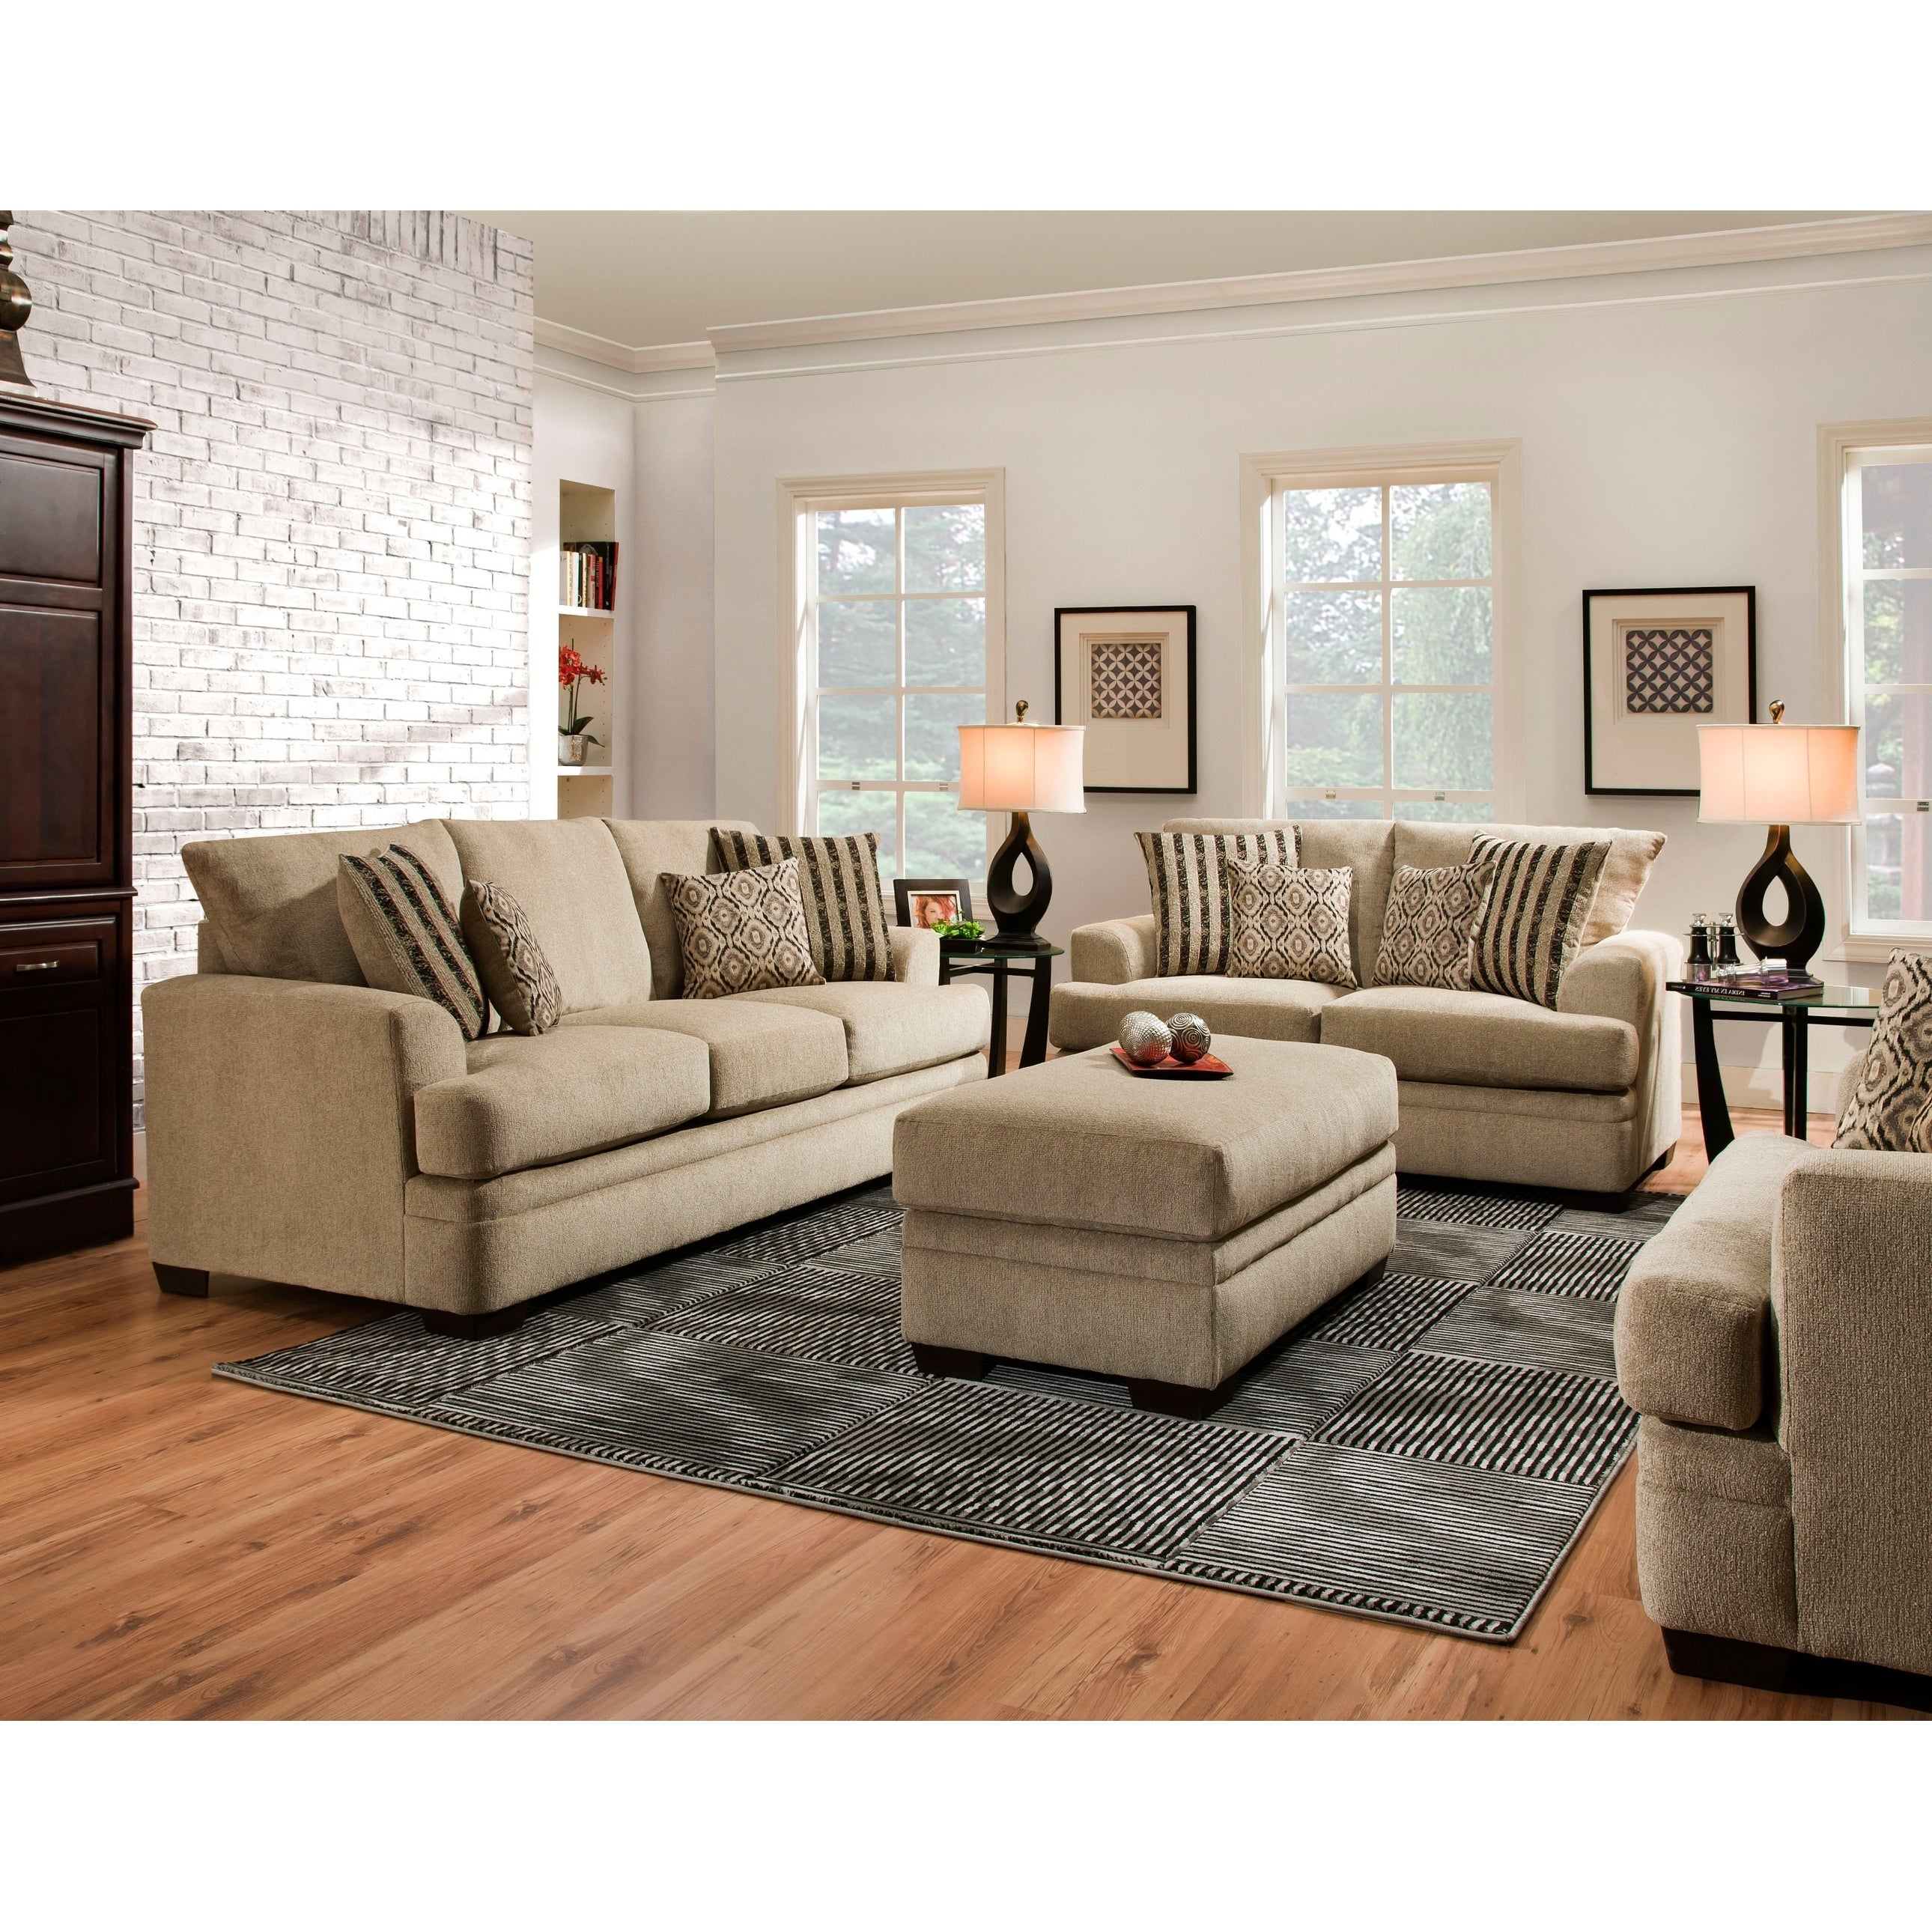 darcy to furniture loveseat sd majik sofa cafe rent pennsylvania evr and ottoman set in own